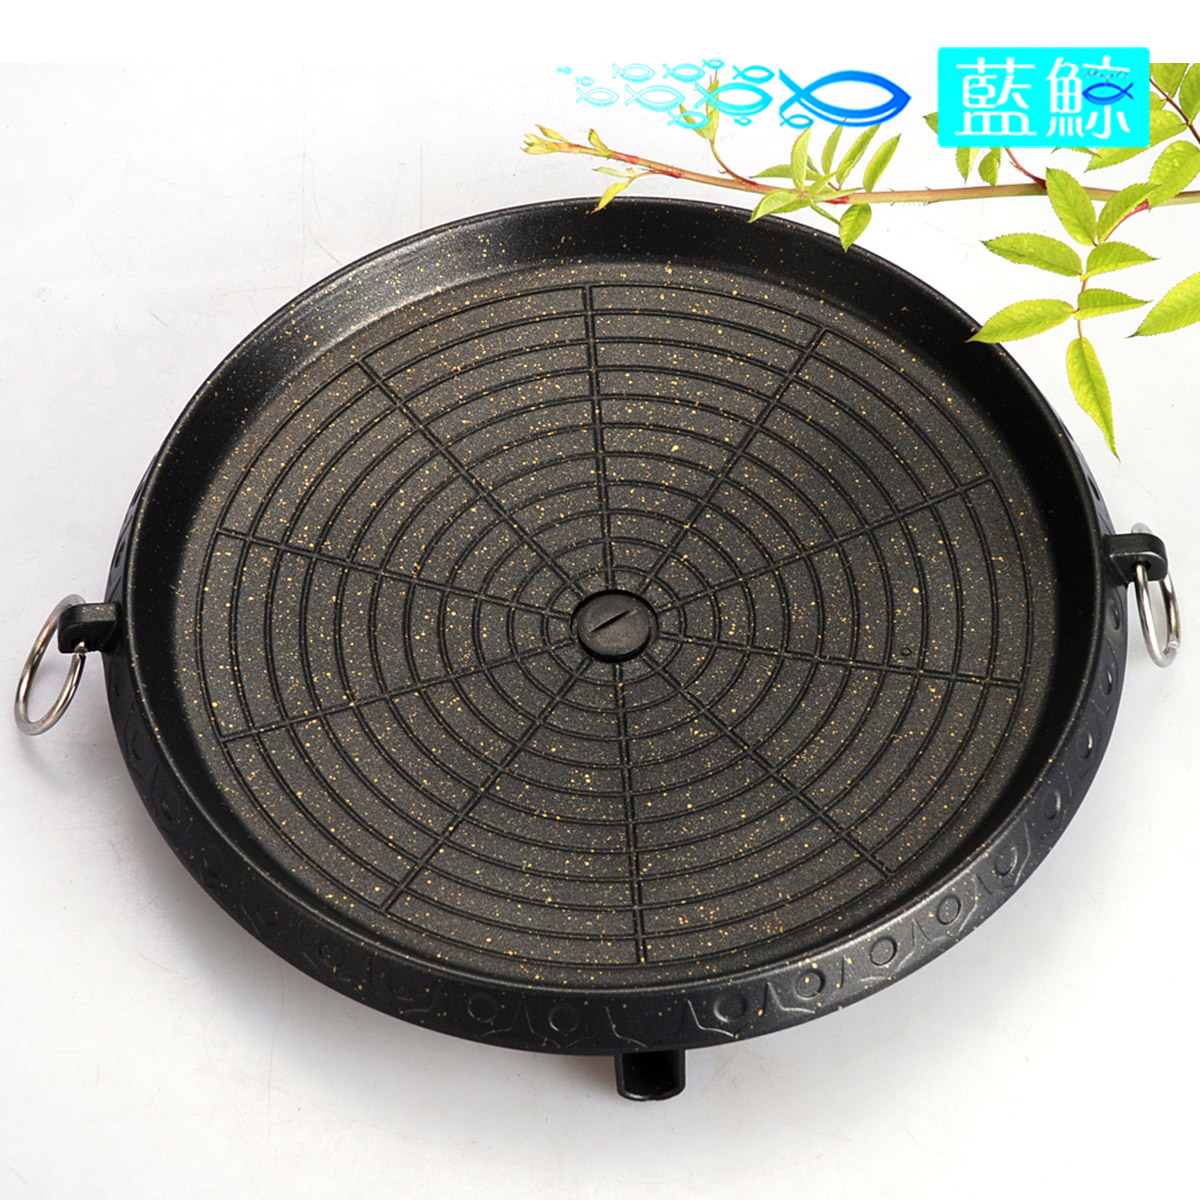 Blue whale round korean bbq grill outdoor portable cooker hotplate oil spill double nonstick grill pan korean barbecue dish pan